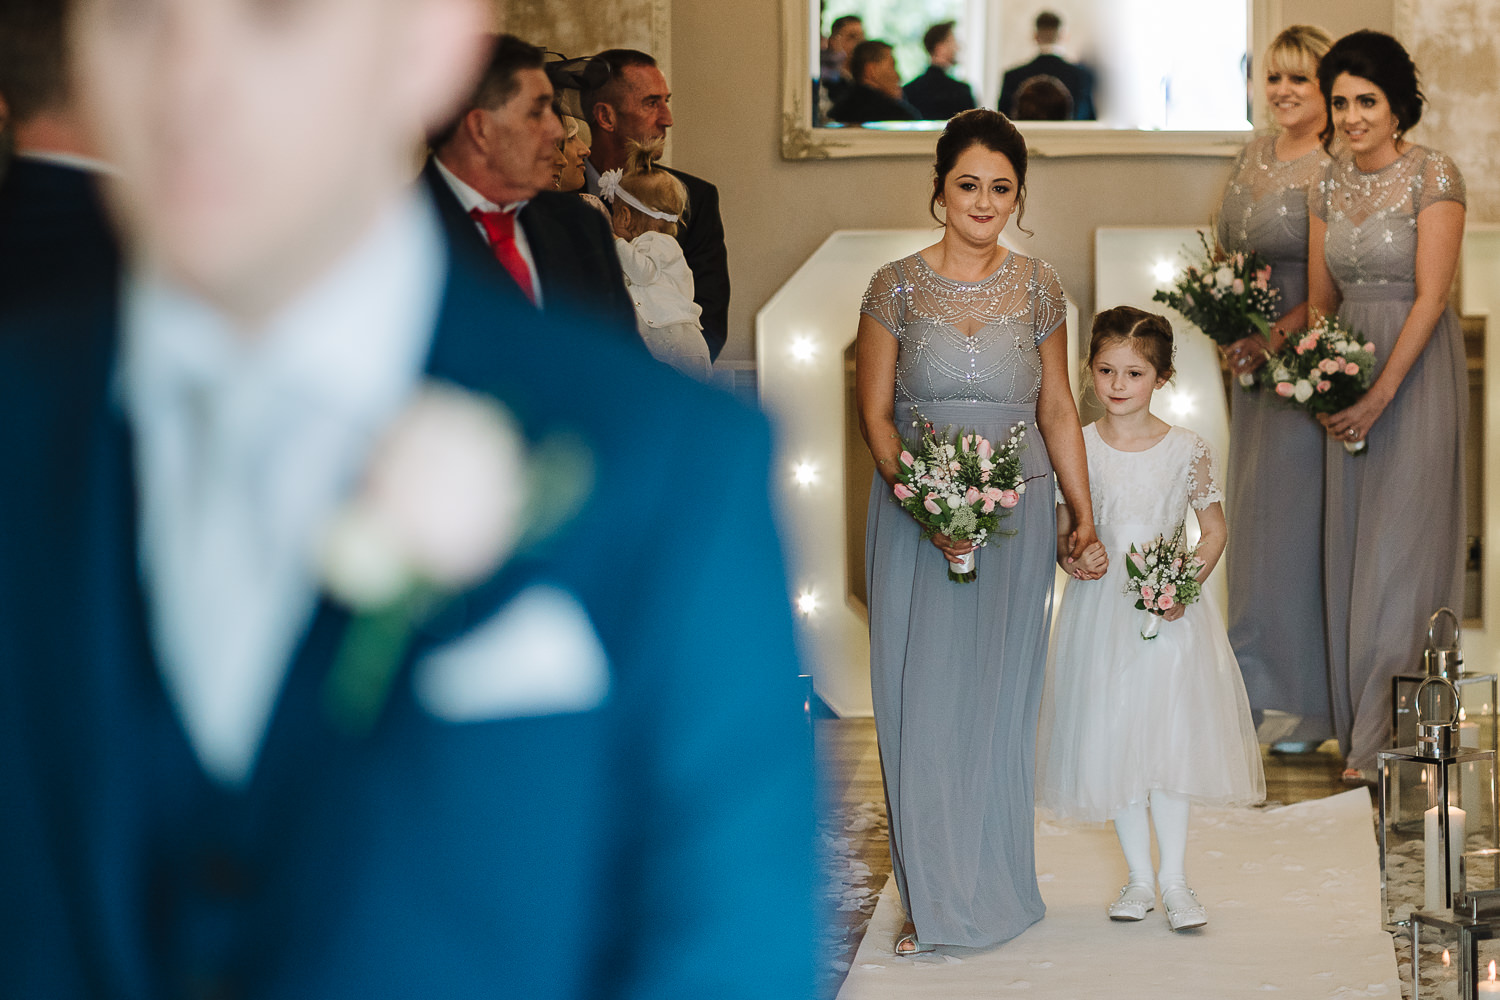 Flower girl and bridesmaid walking down the aisle